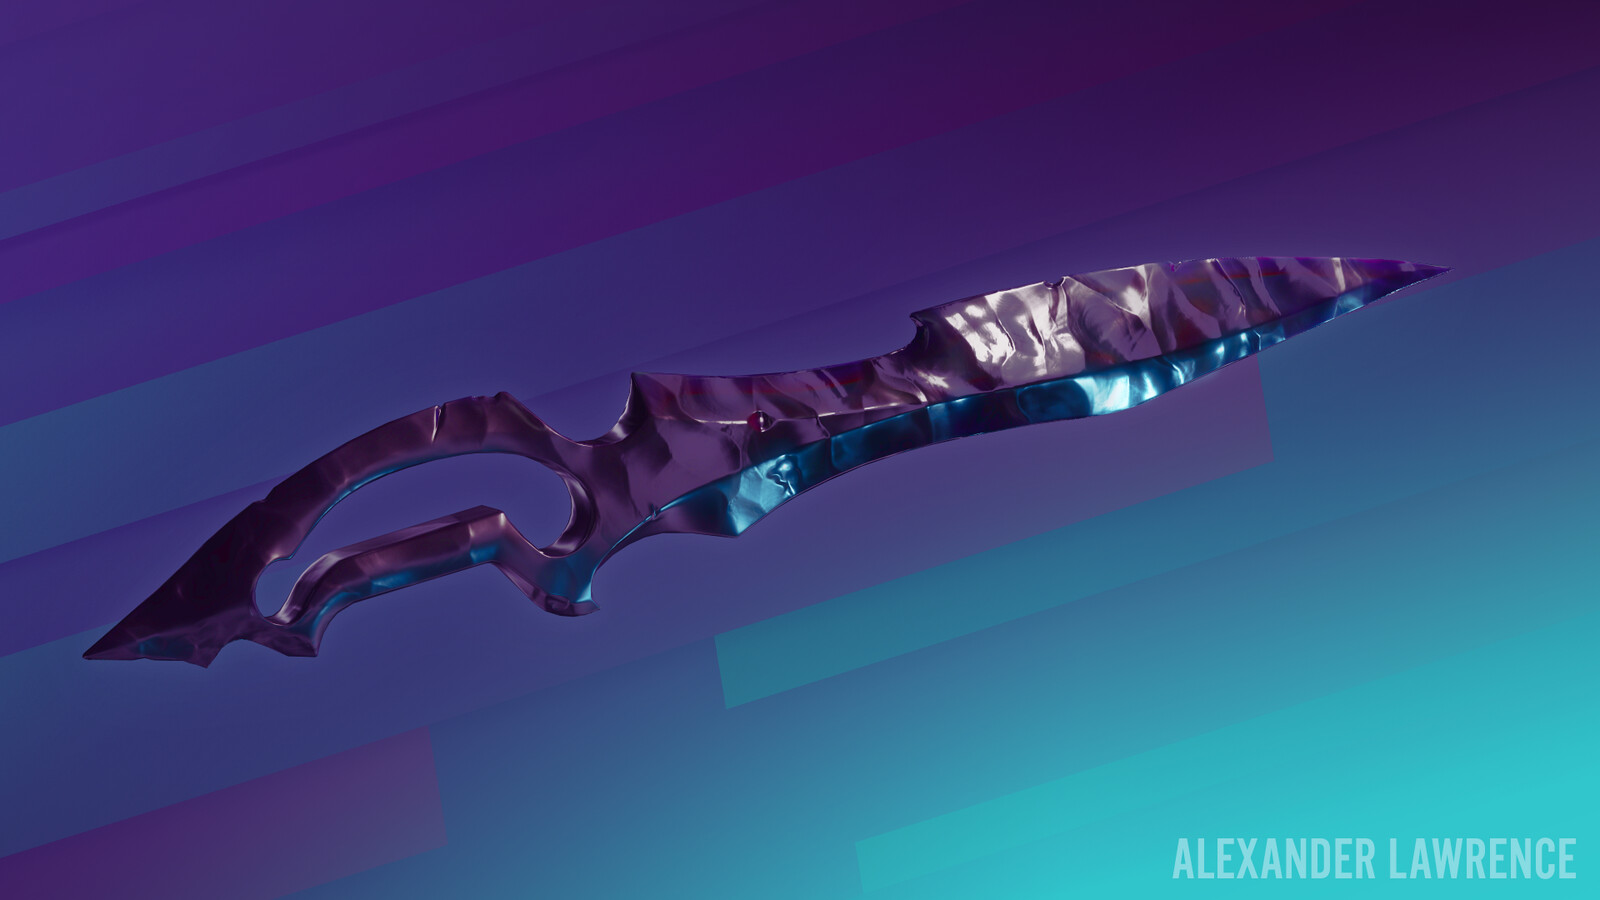 Obsidian one-handed sword. The design of this came from one of the assets in an Epic Games mobile weapons pack that's available for free on Unreal Marketplace. Their version wasn't obsidian, but I liked the shape so much that I just had to do my own take.